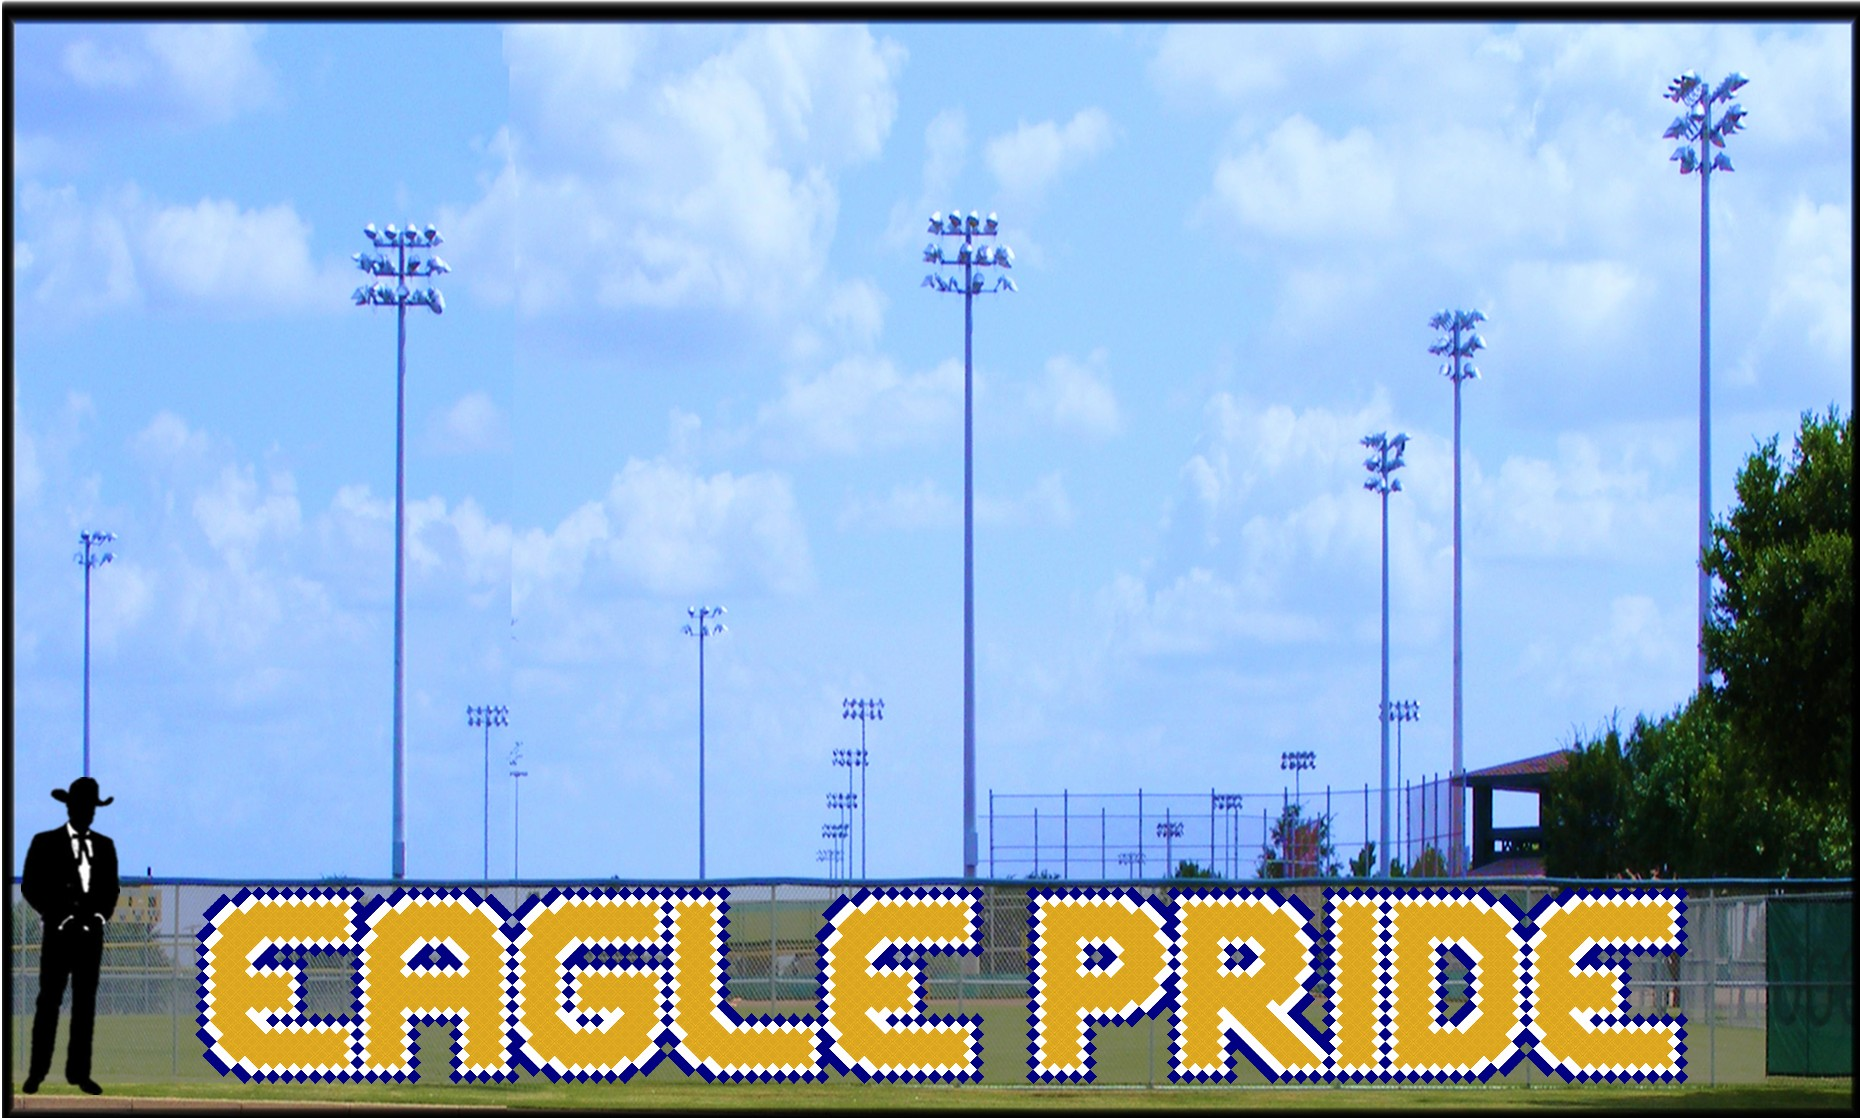 4' Eagle Pride Styled